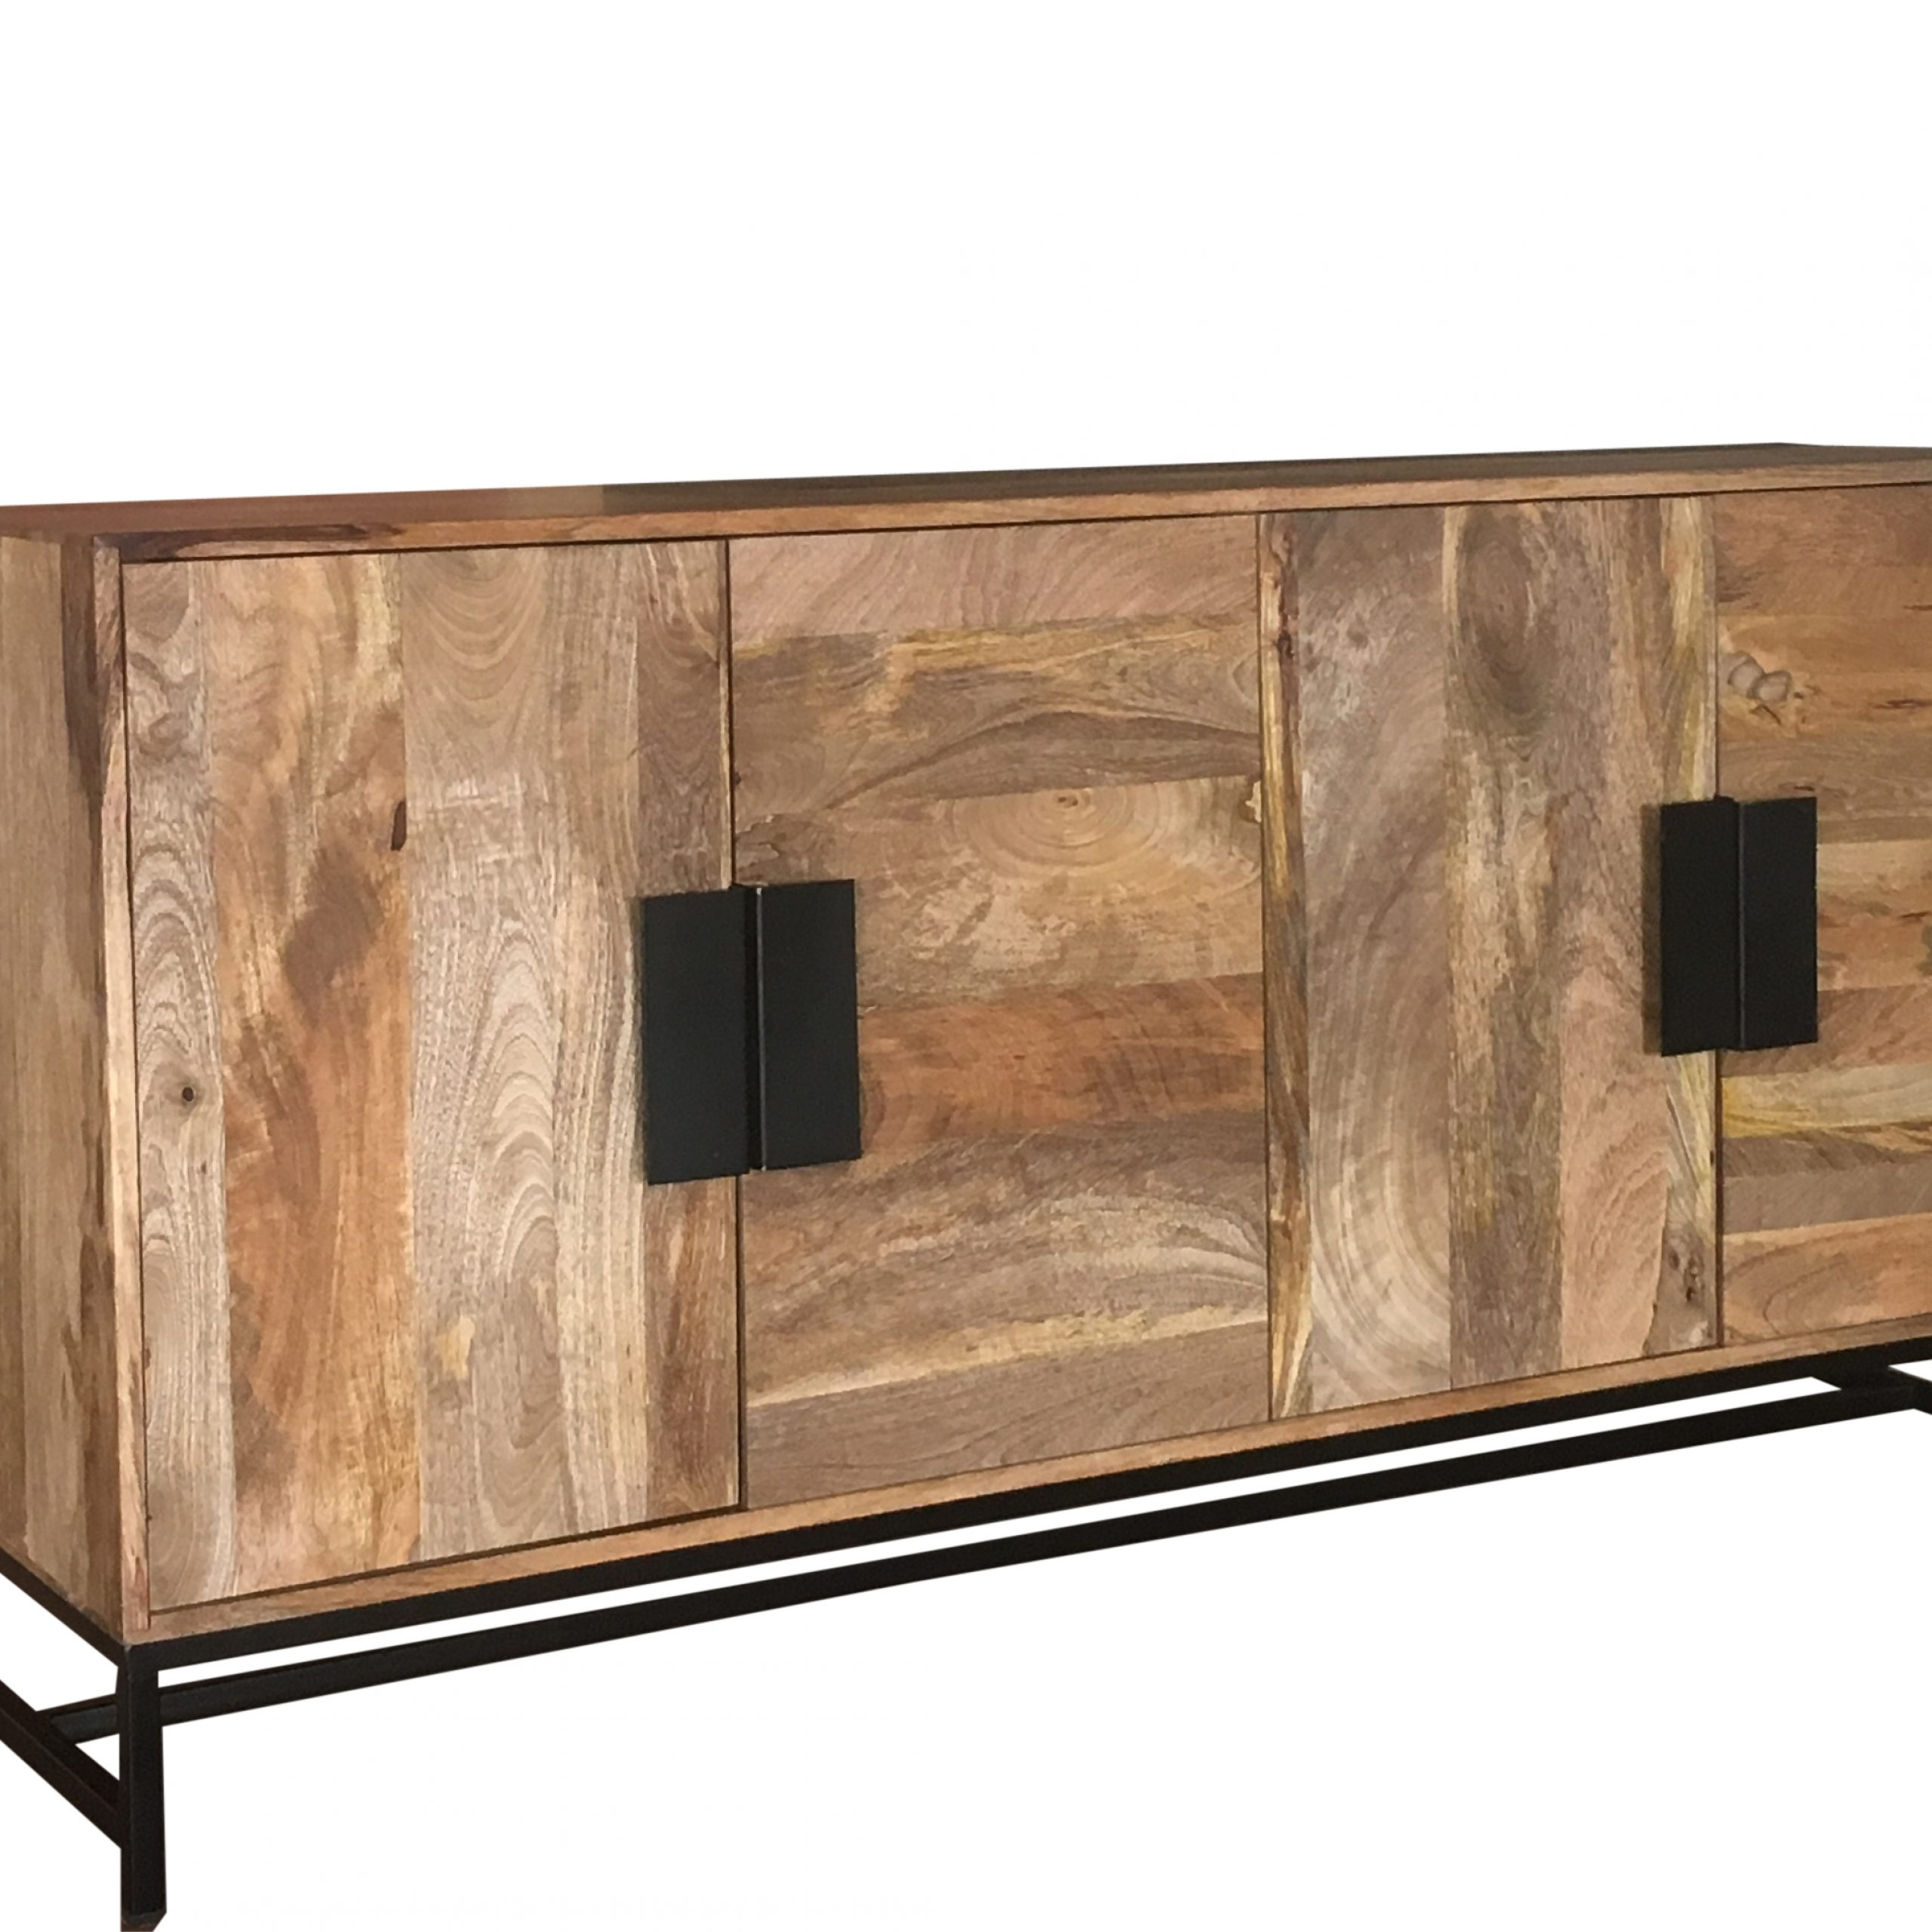 2020 Wood Accent Sideboards Buffet Serving Storage Cabinet With 4 Framed Glass Doors With Regard To Urbanization Range Contemporary 4 Door Wooden Sideboard (View 12 of 20)